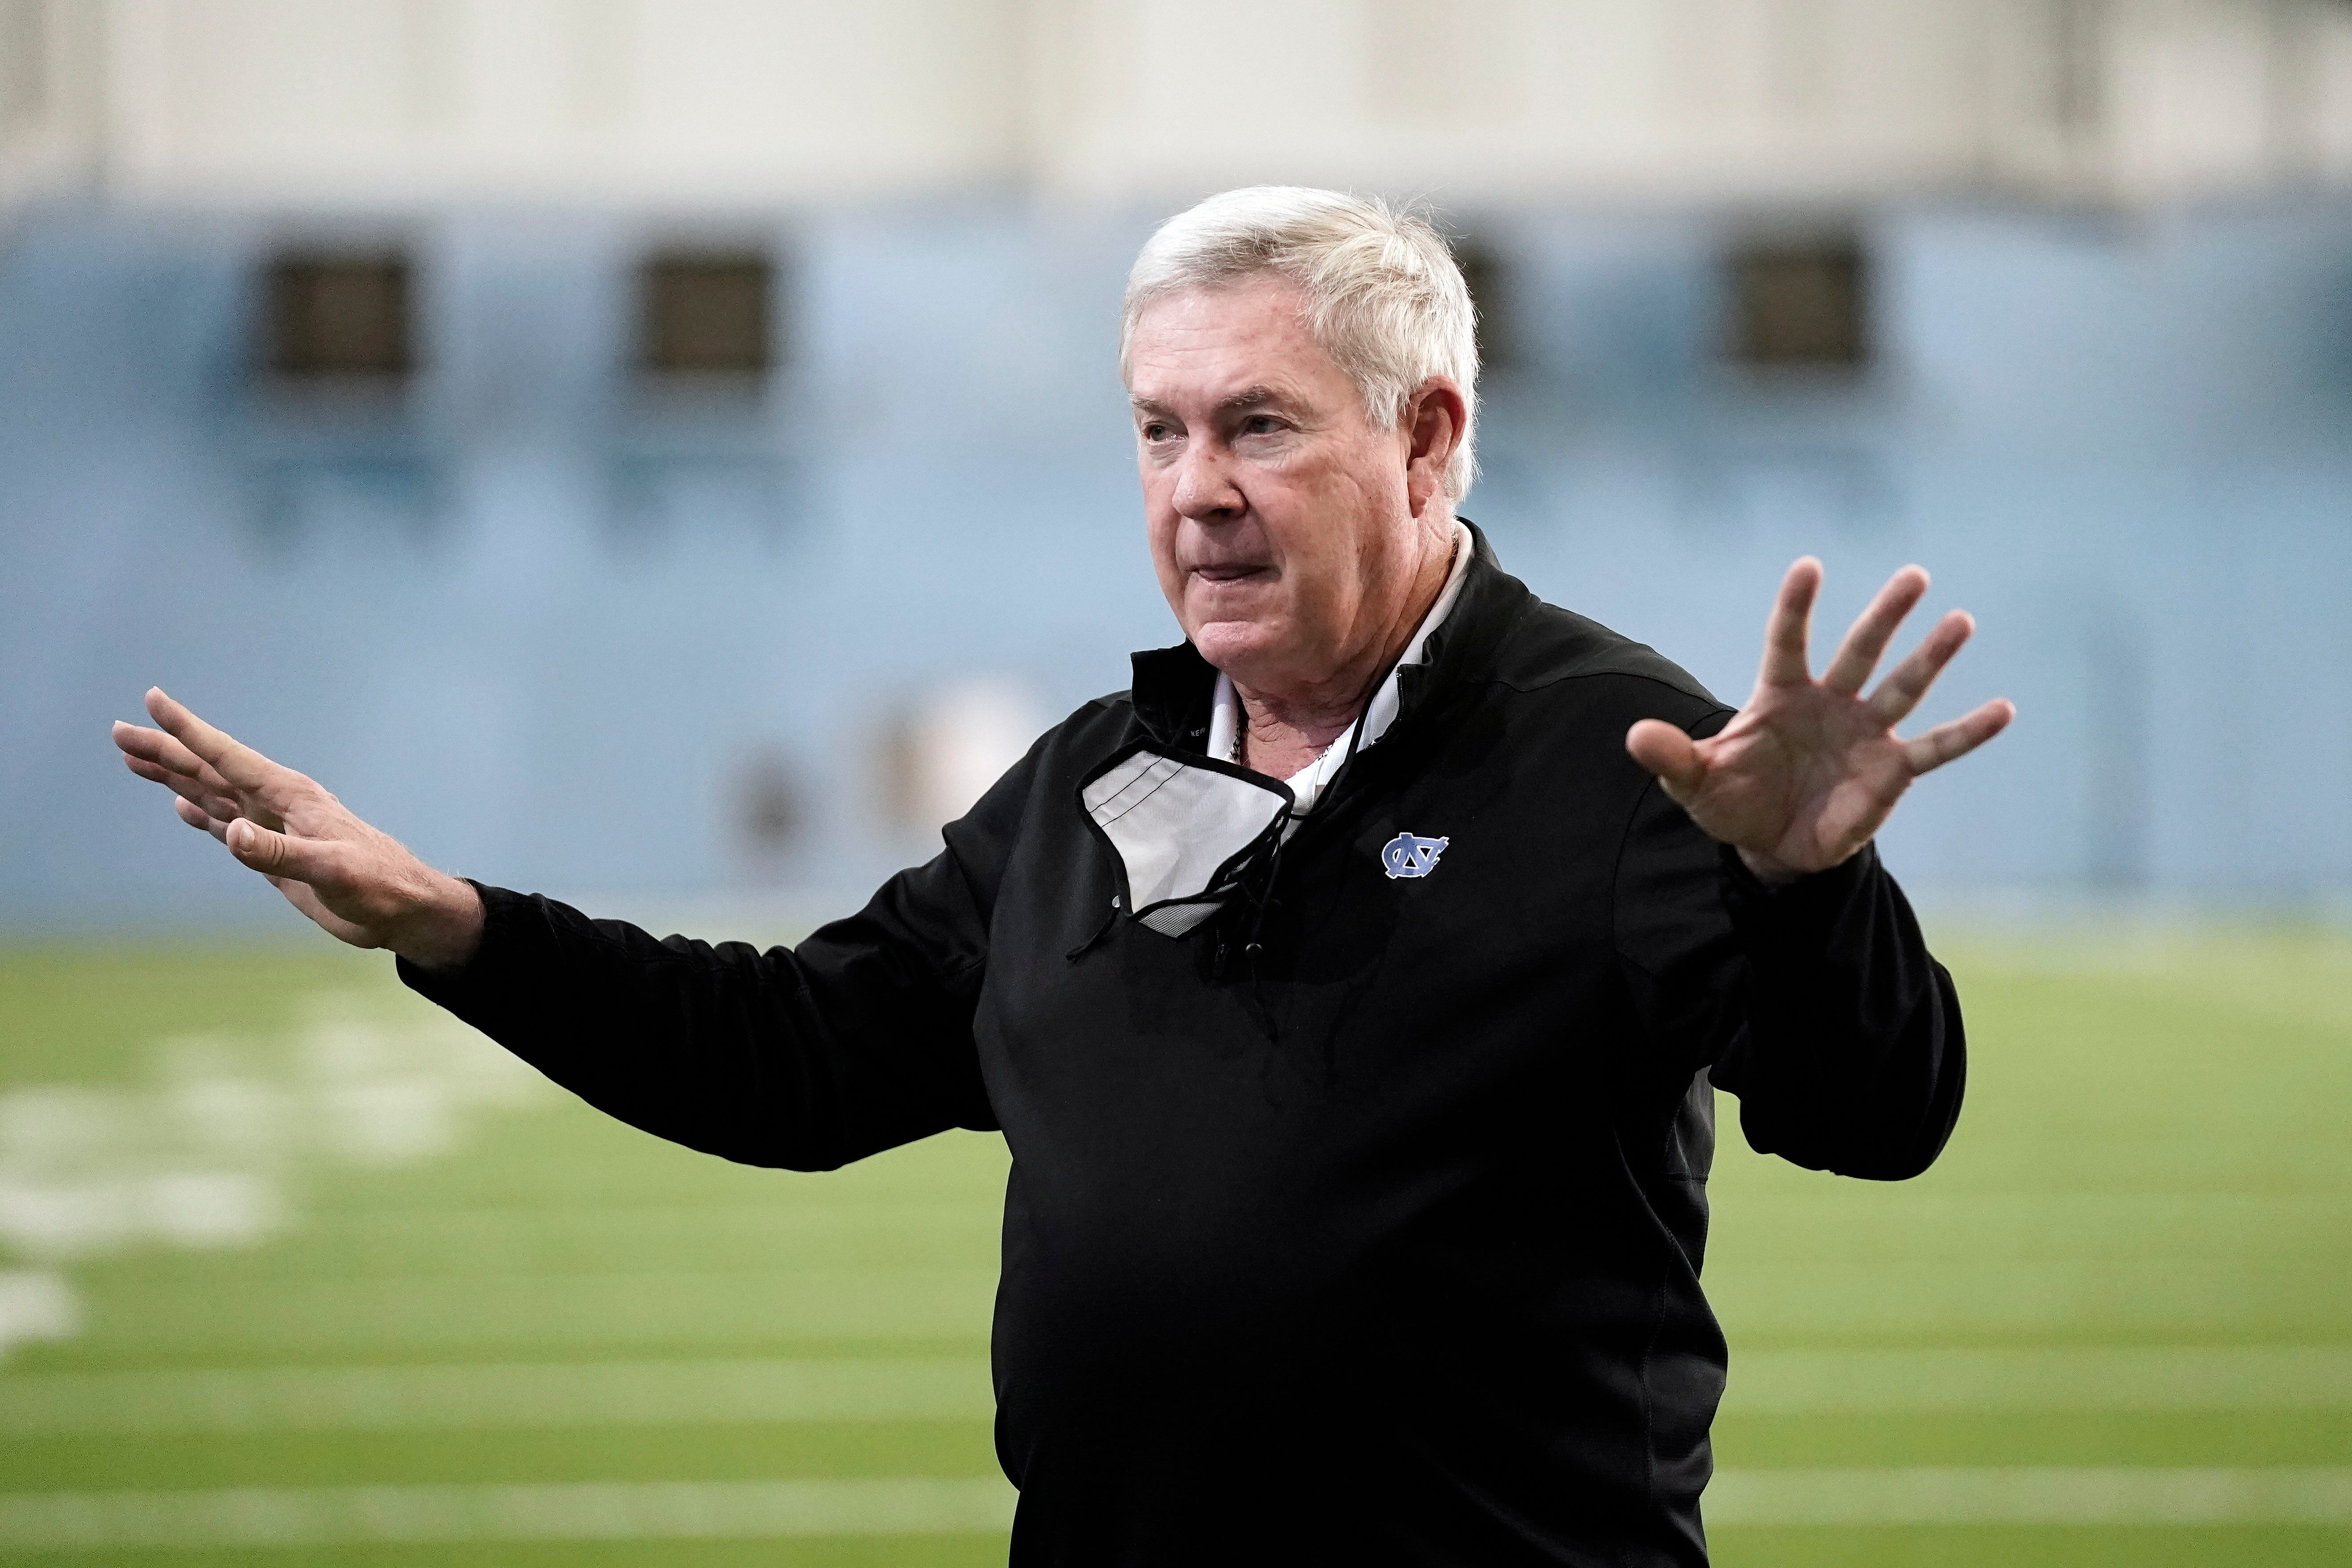 Mack Brown speaks prior to North Carolina's pro day workout activities for NFL scouts and coaches in March.